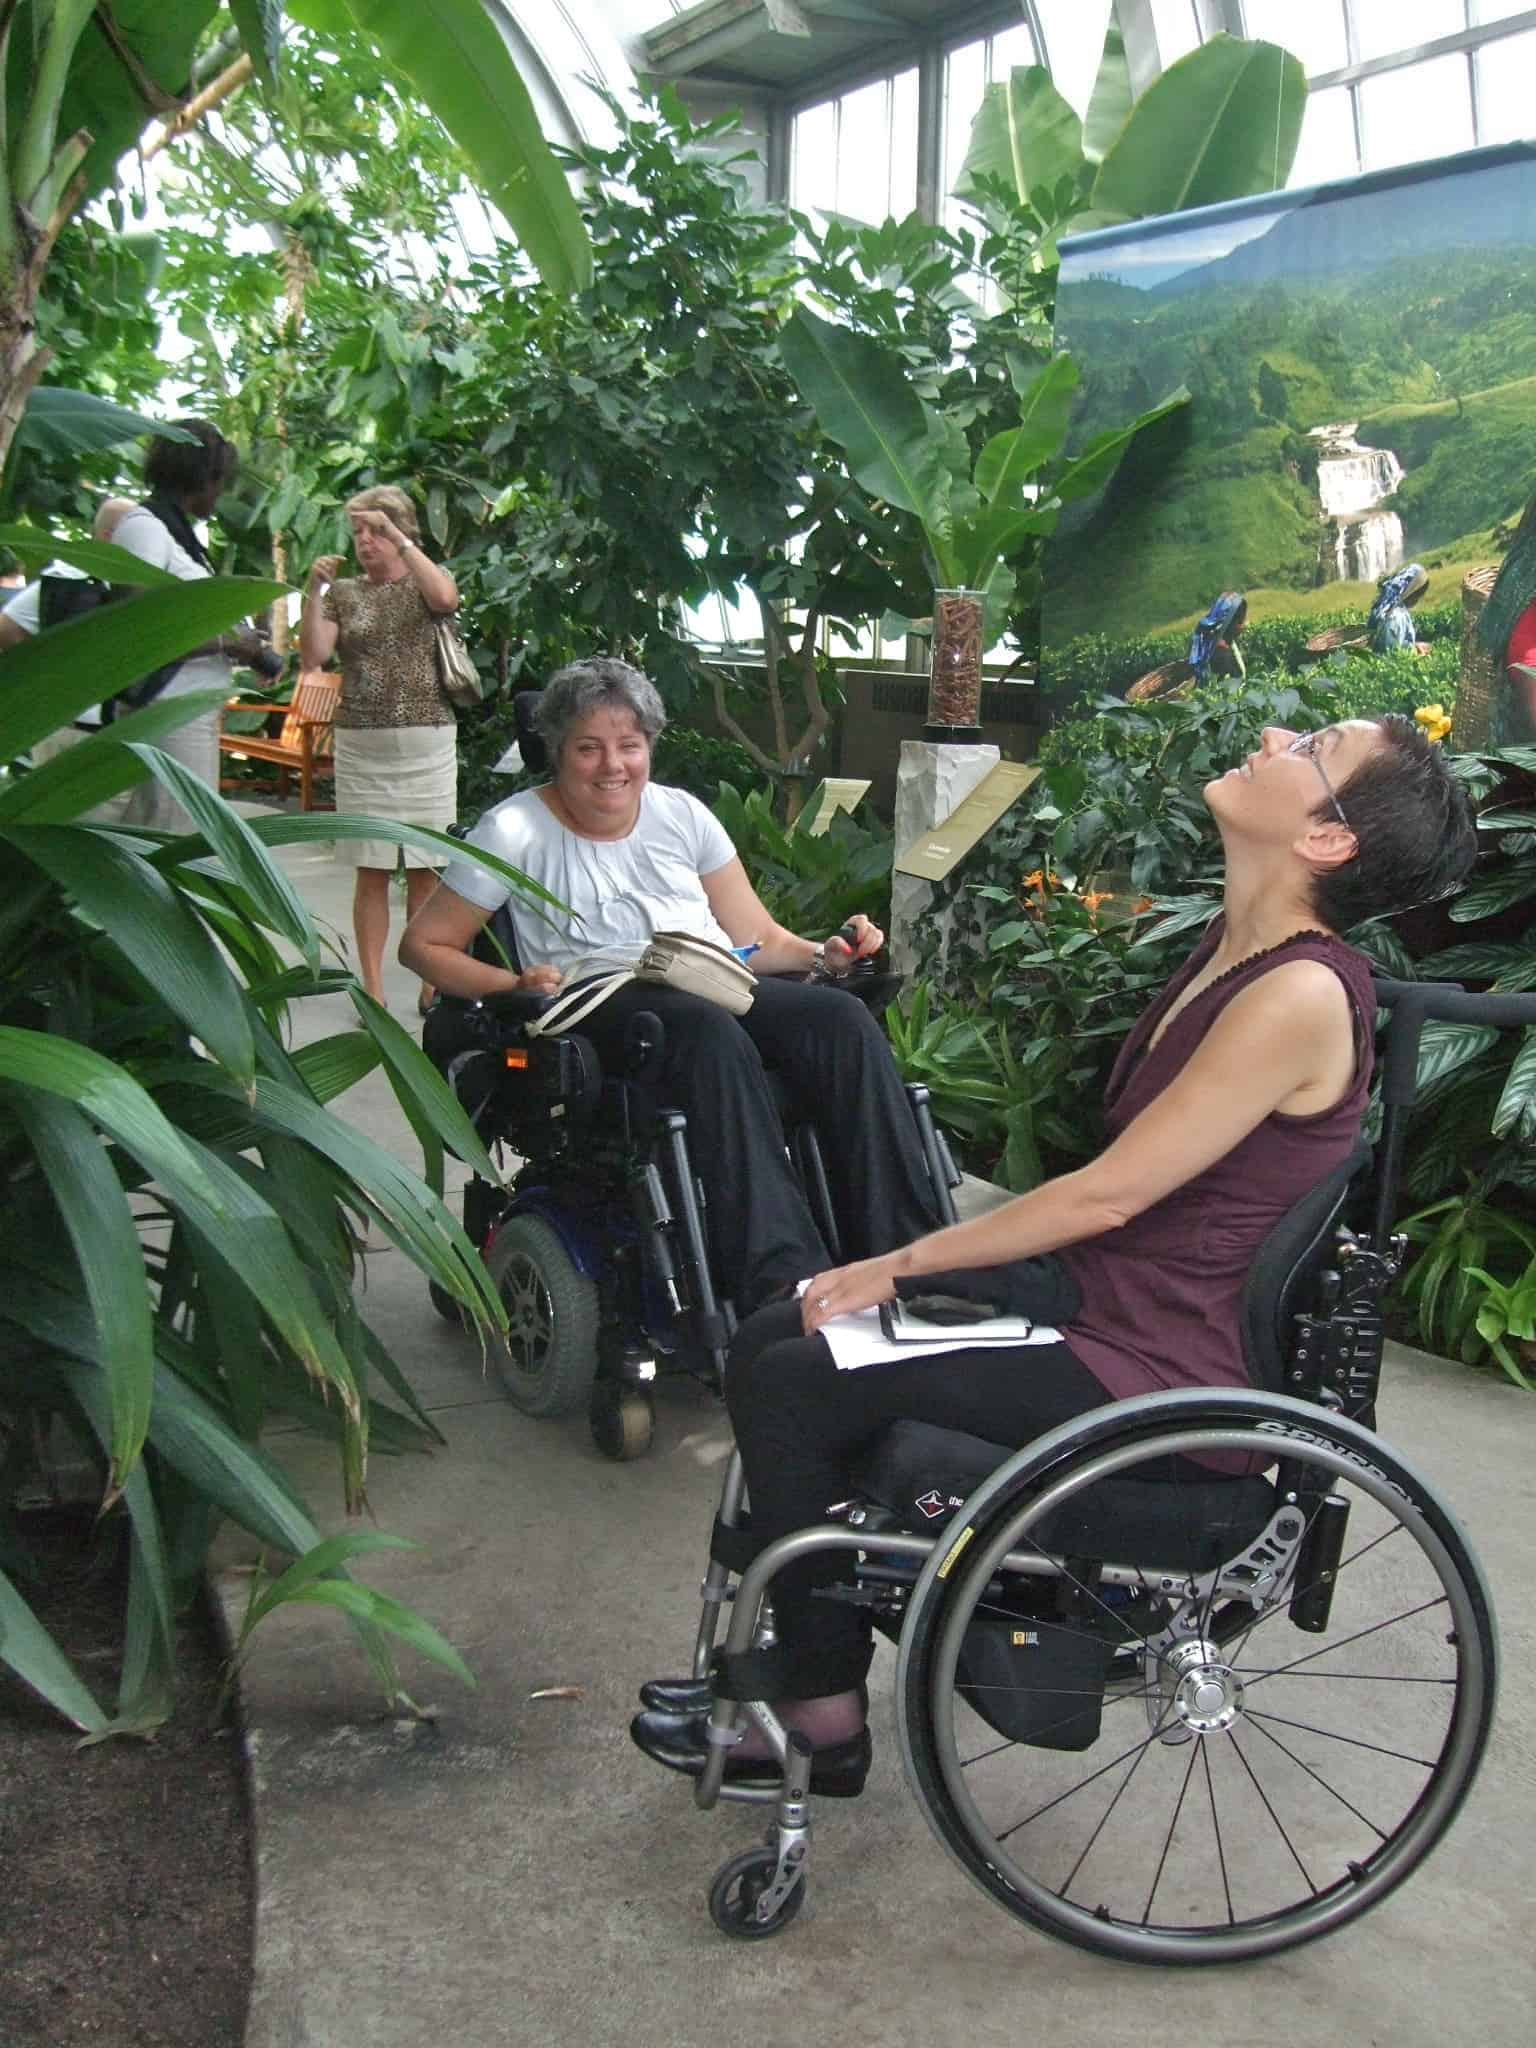 Wide smooth pathways lead wheelchair travellers through Montreal Botanical Gardens' lush tropical greenhouses.